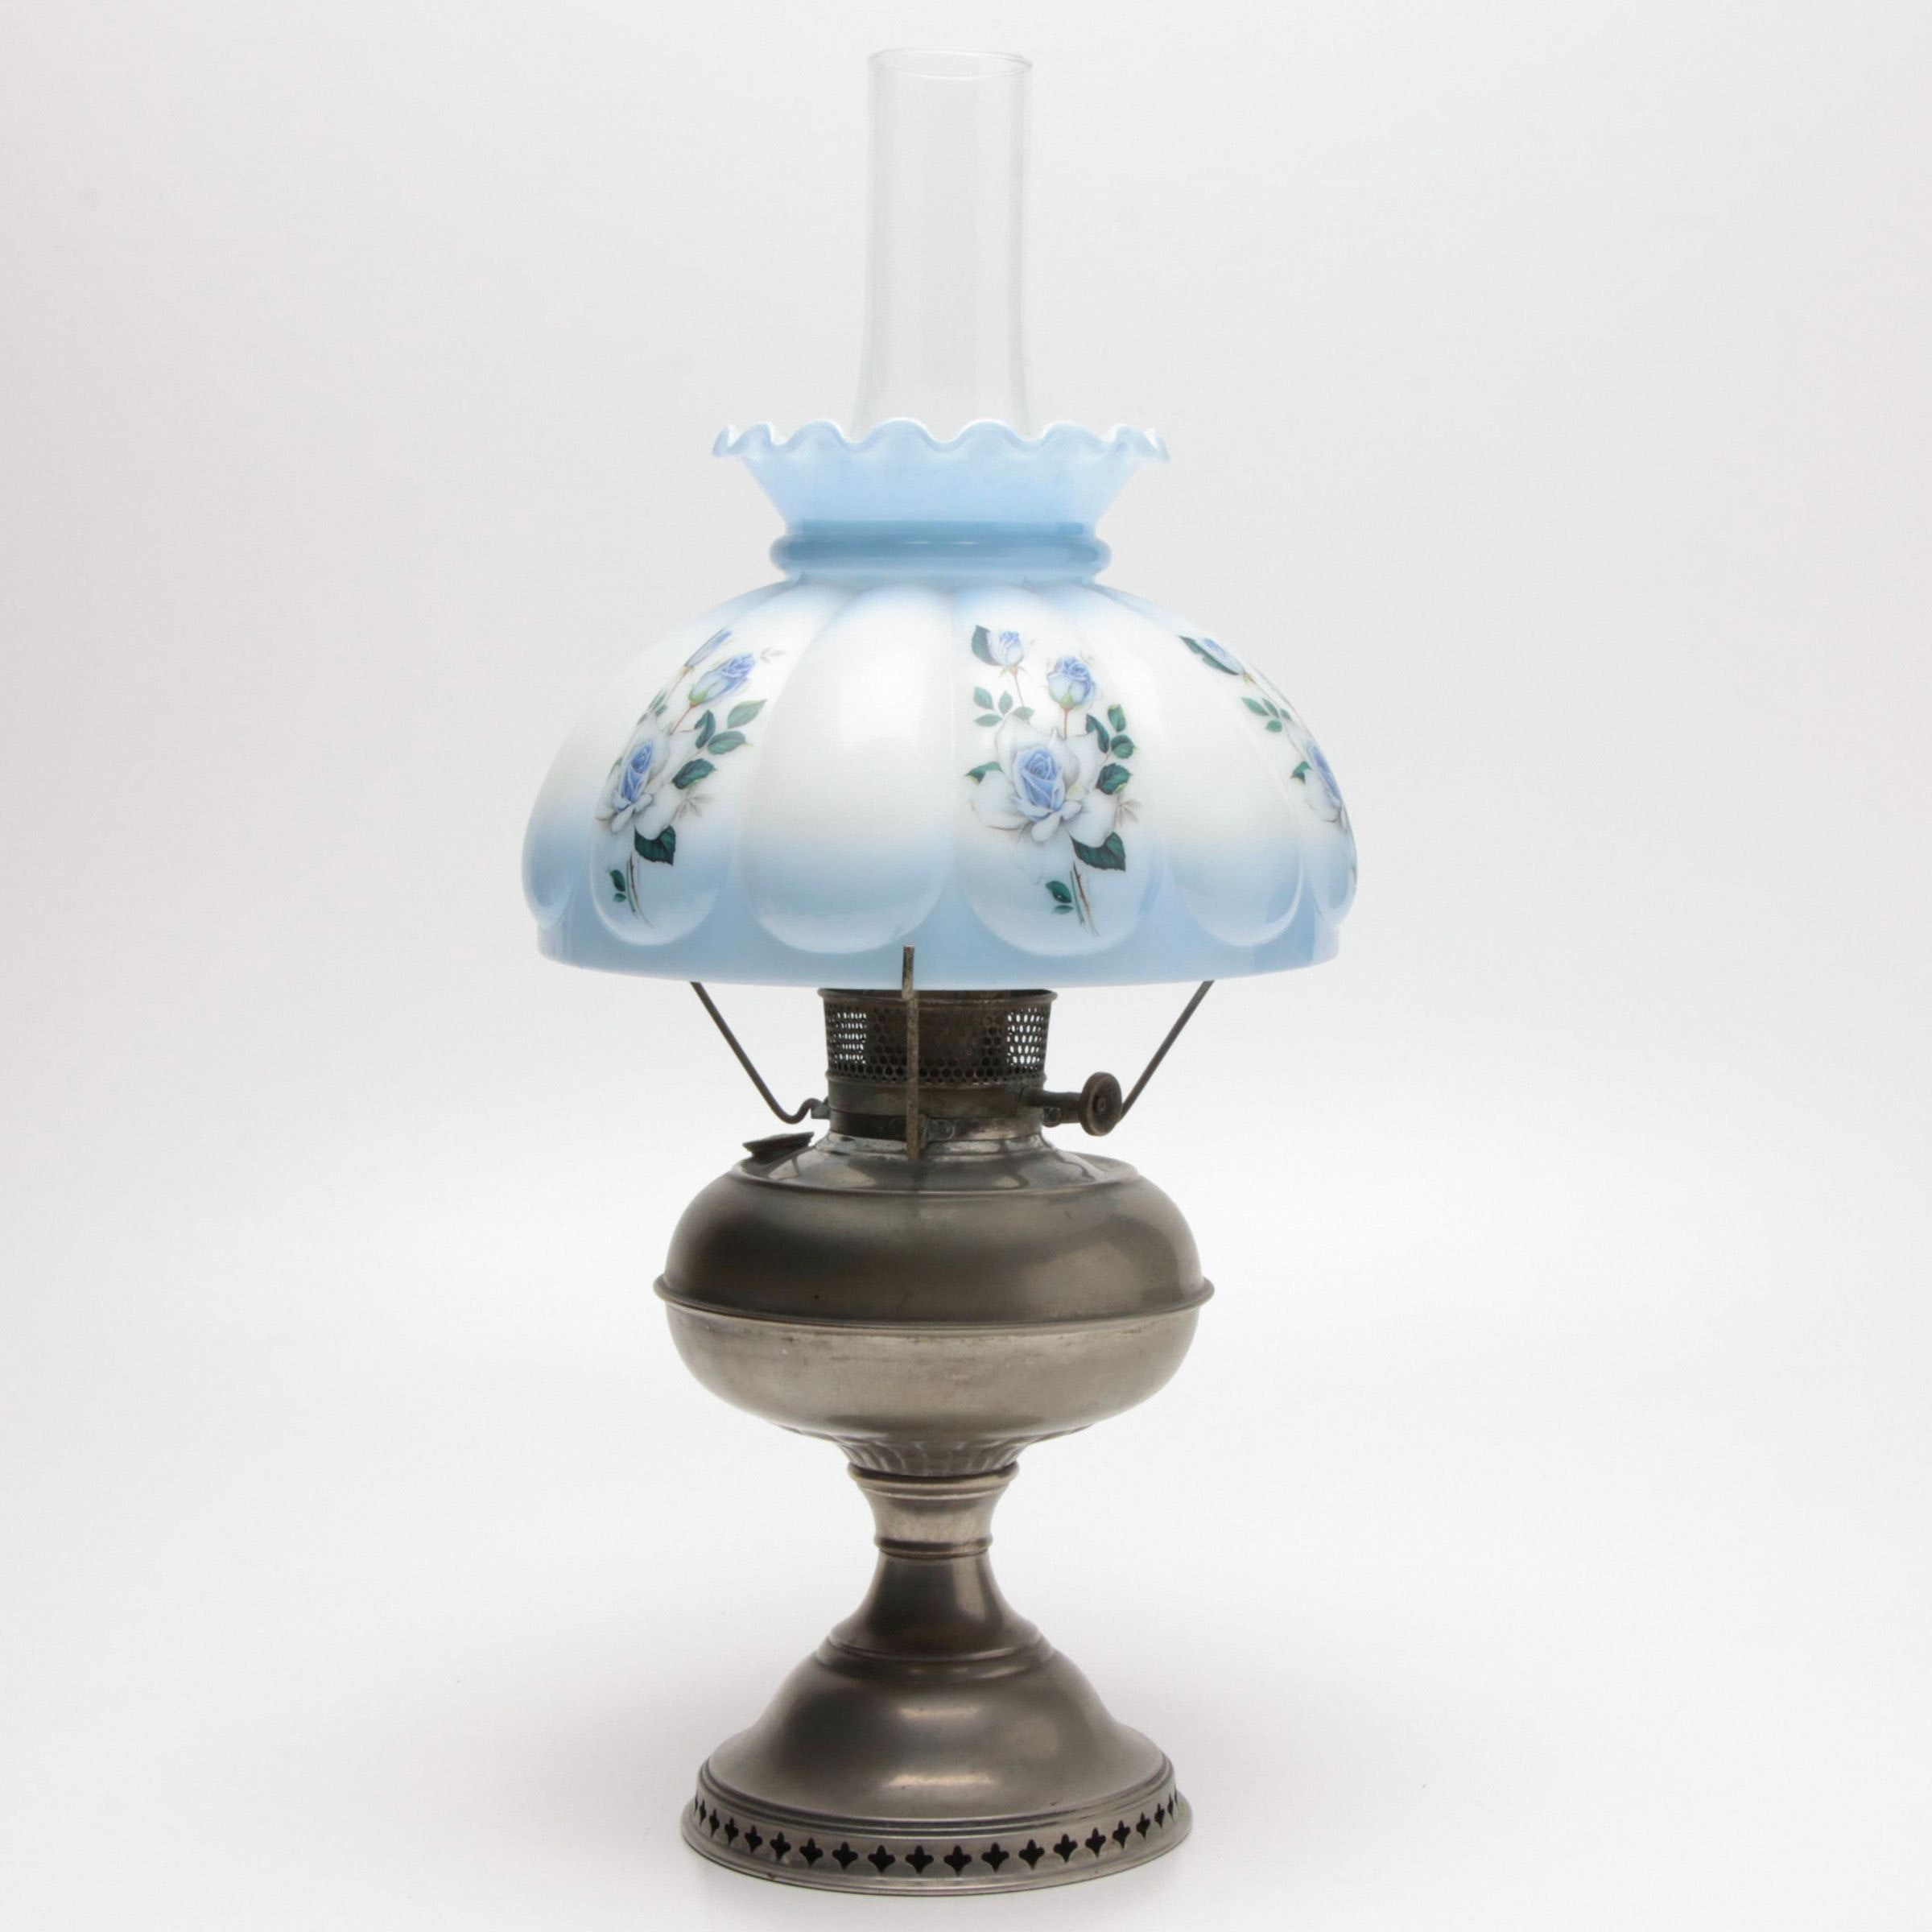 Oil Lamp with Hand-Painted Floral Glass Shade, Late 19th to Early 20th Century